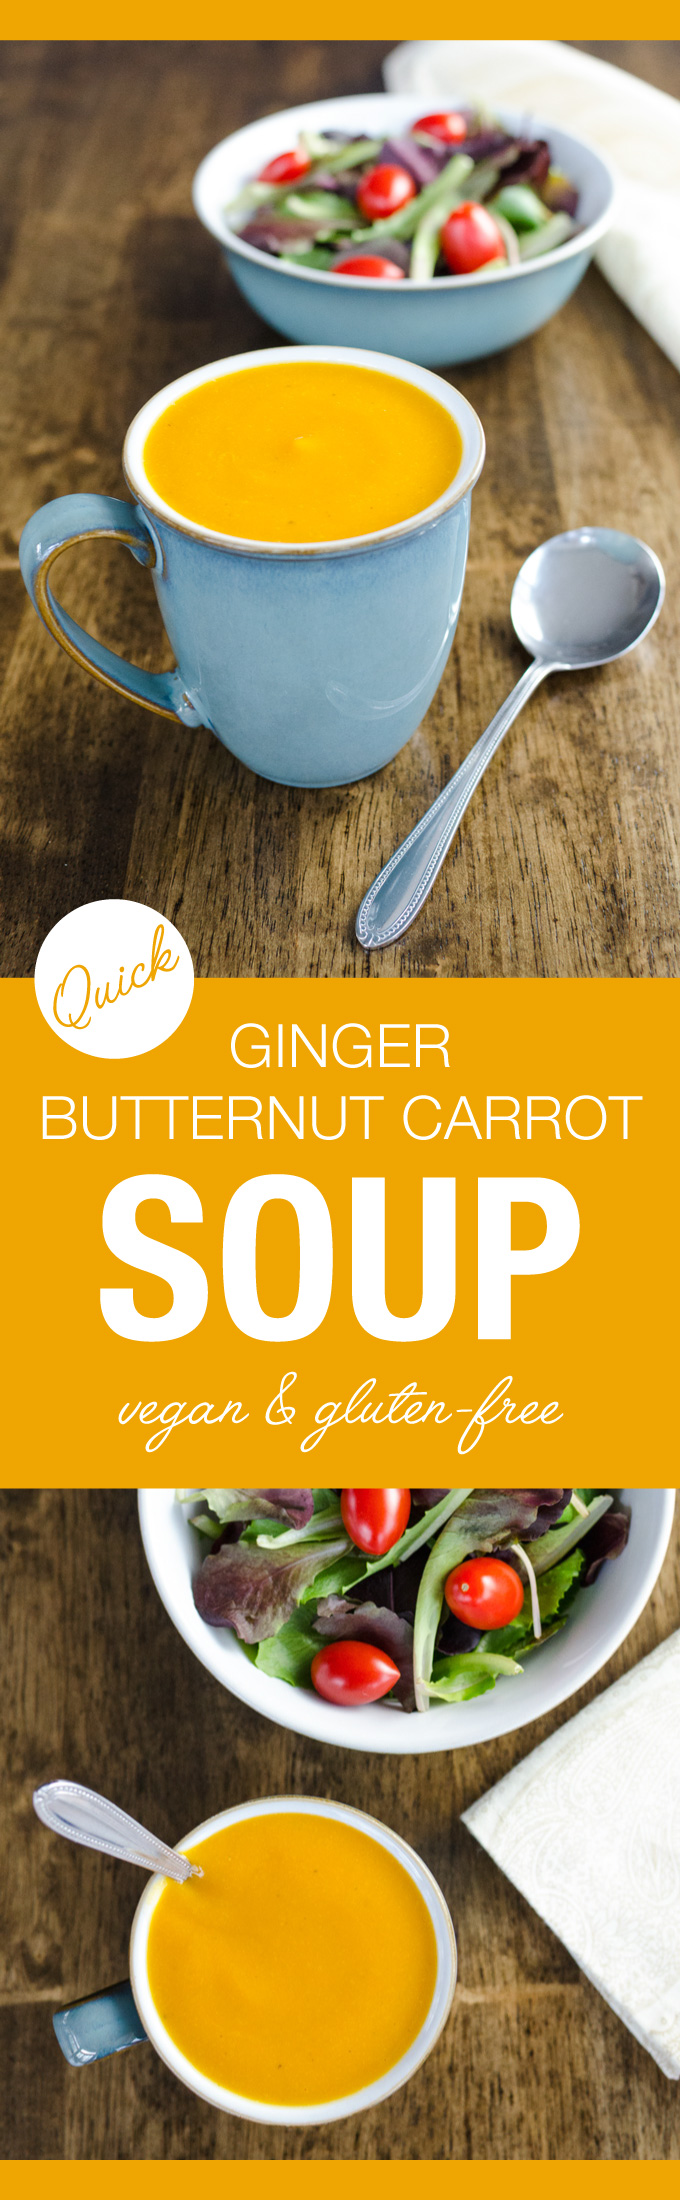 Calories In Carrot Ginger Soup Whole Foods